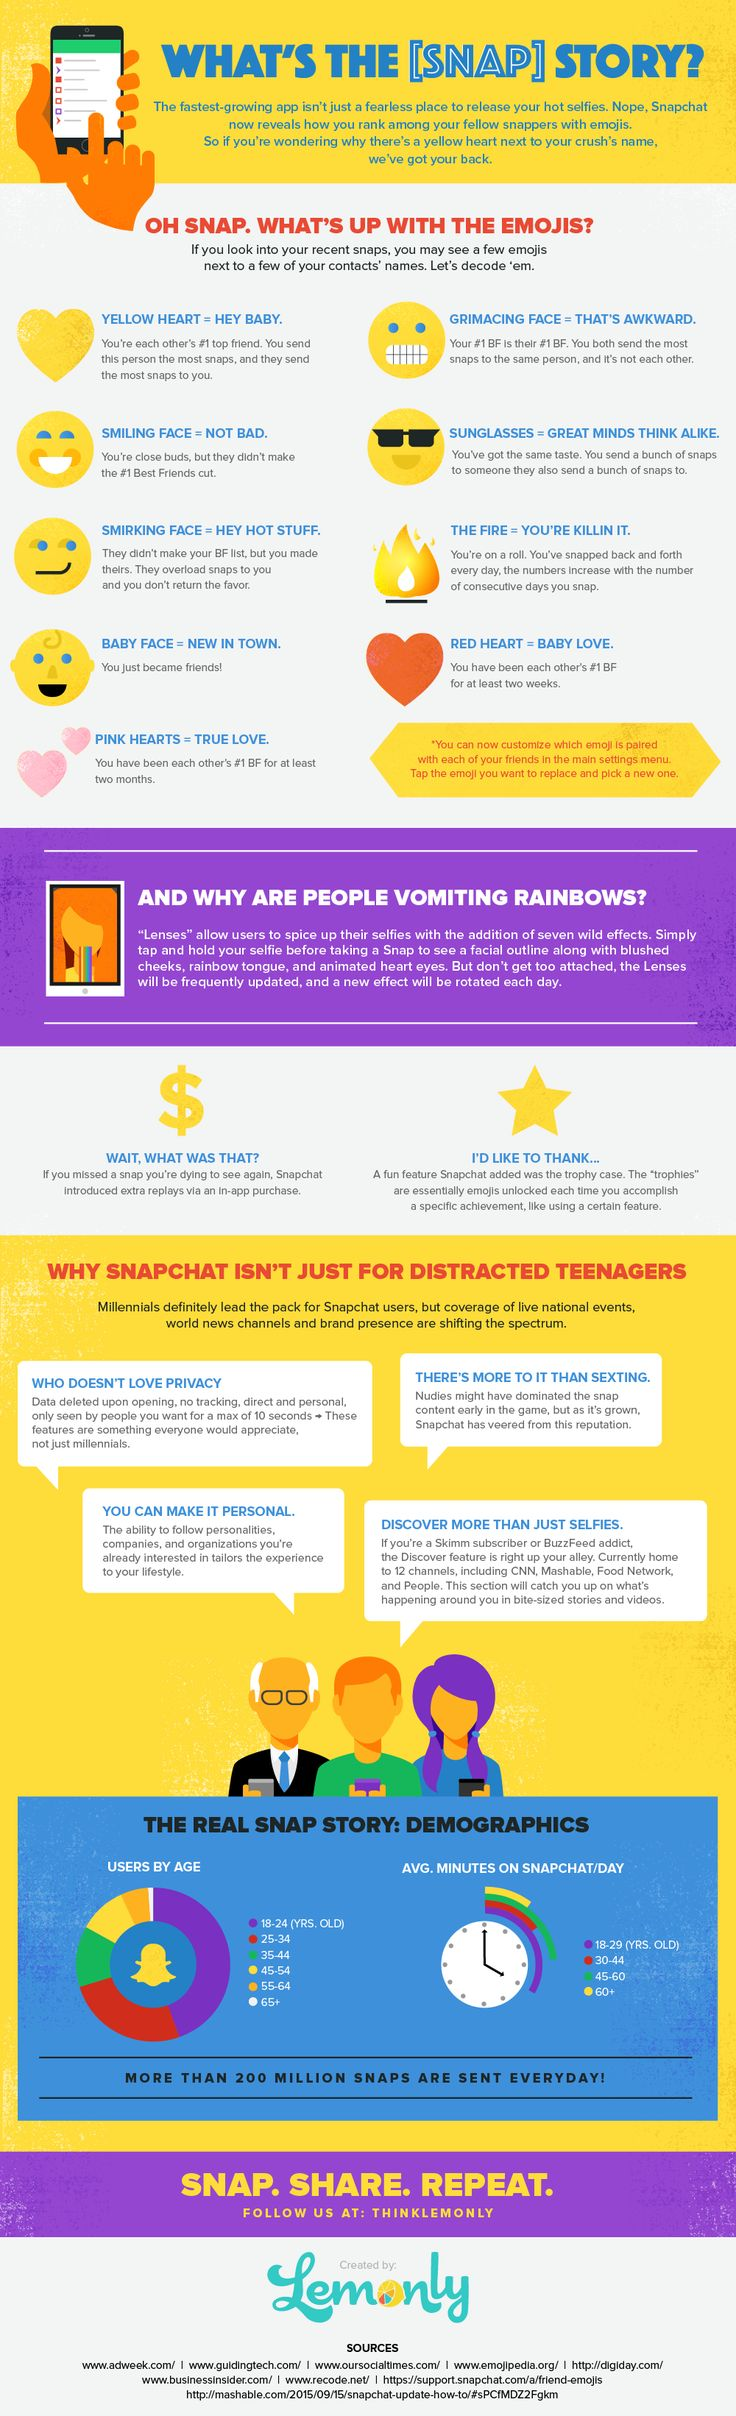 What's The Snap Story #infographic #SnapChat #SocialMedia